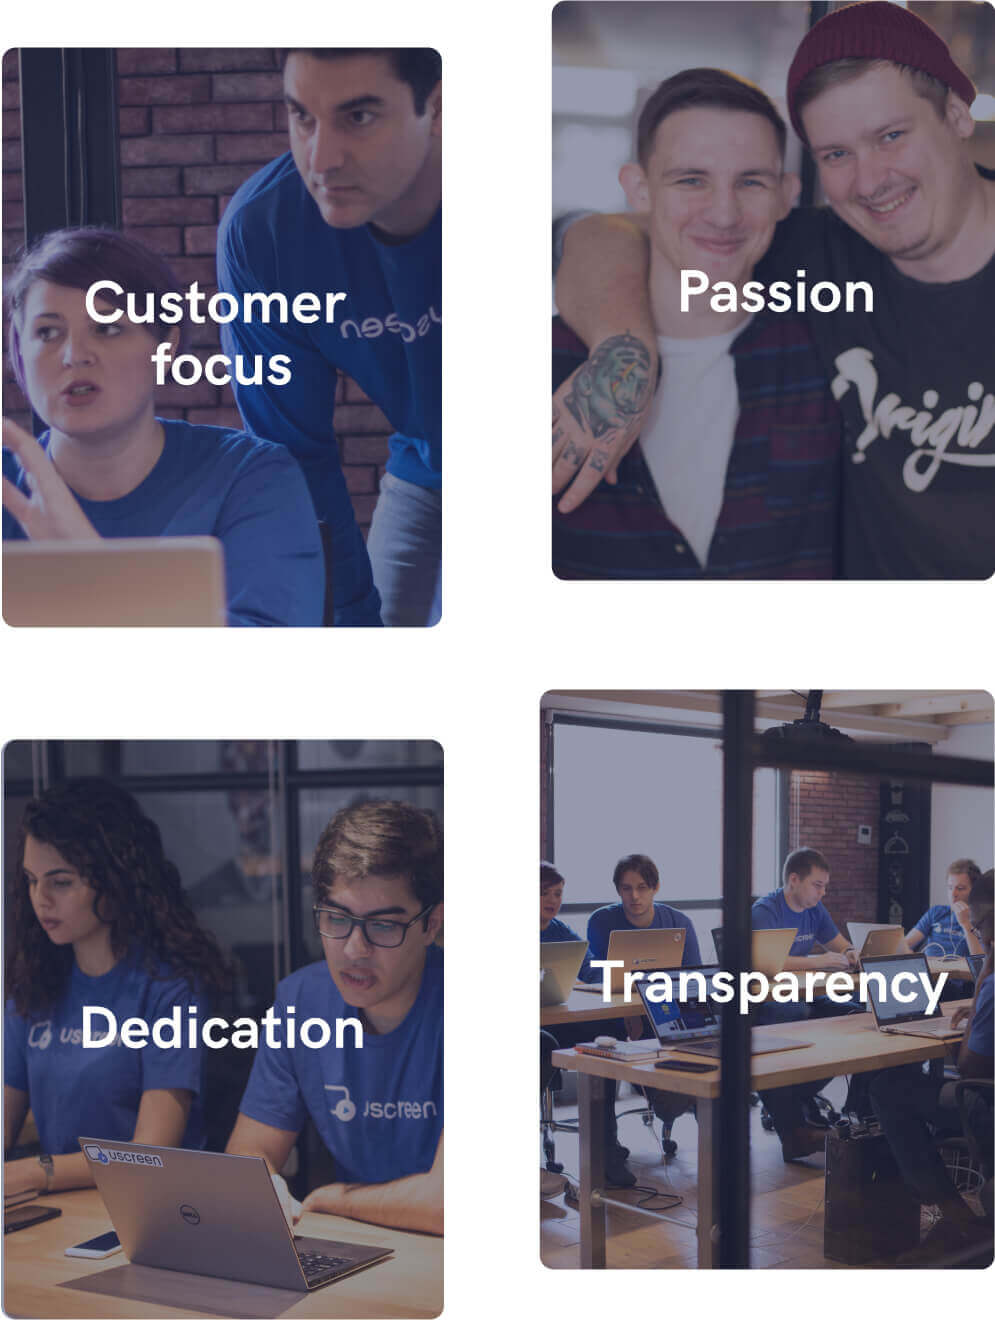 Uscreen's team values and principles